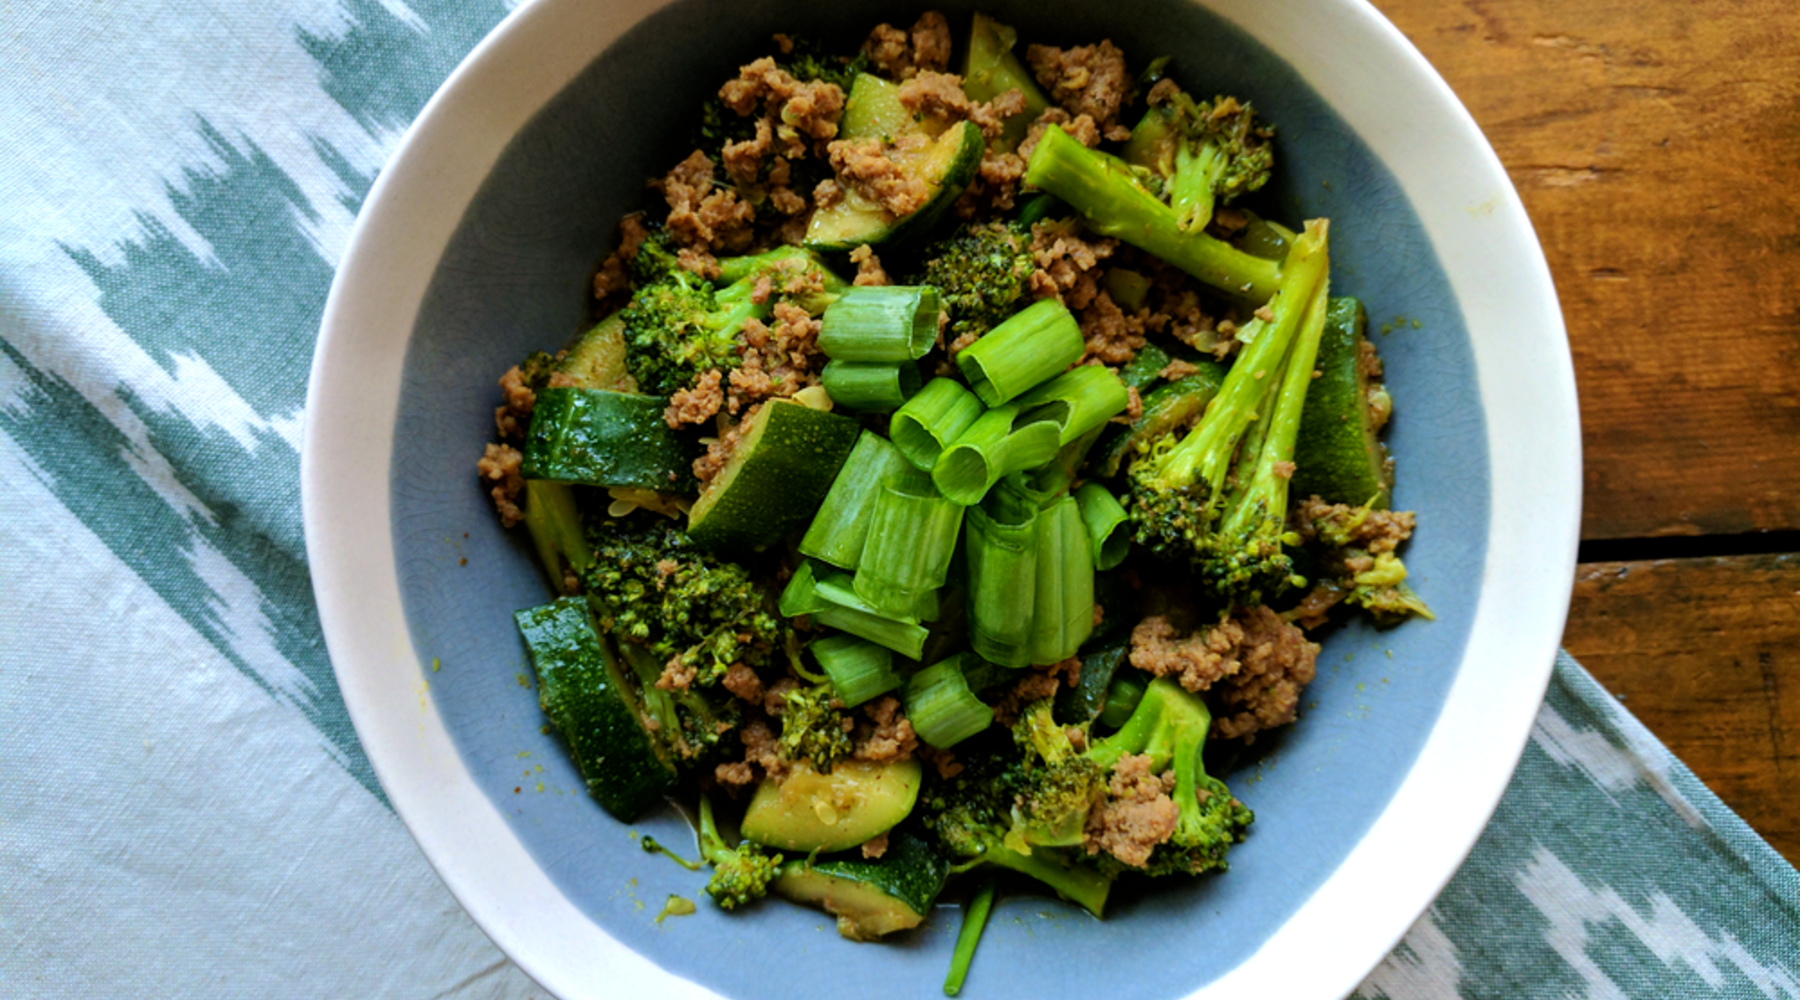 Food from the Farm: Summer Vegetable Ground Beef Stir Fry